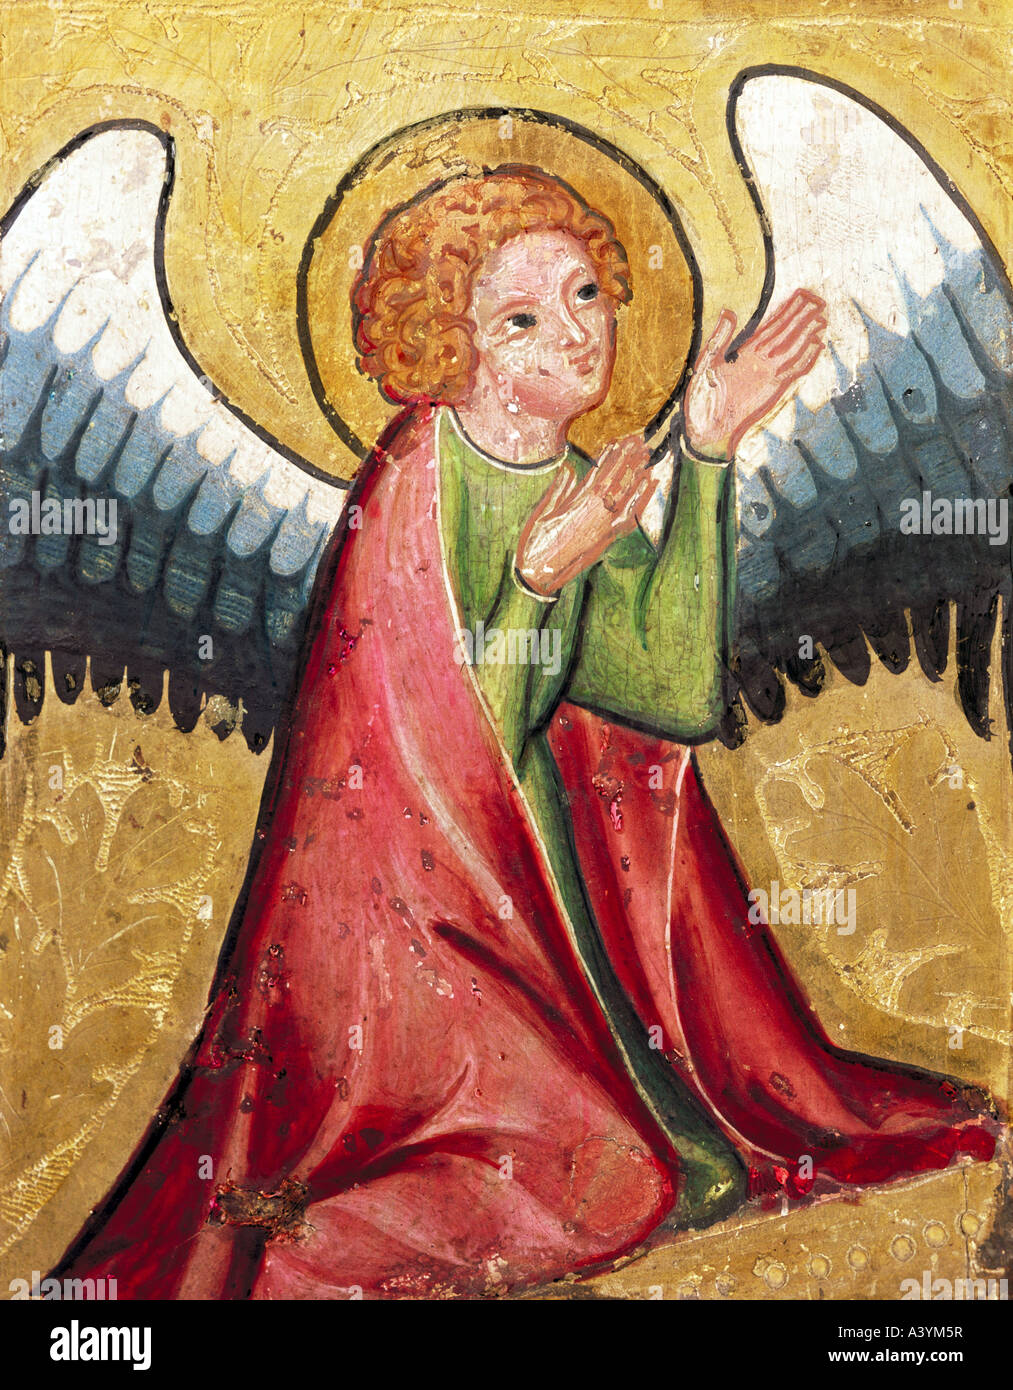 'fine arts, religious art, angels, 'praying angel', painting, Germany, circa 1330, oil on panel, Bavarian - Stock Image